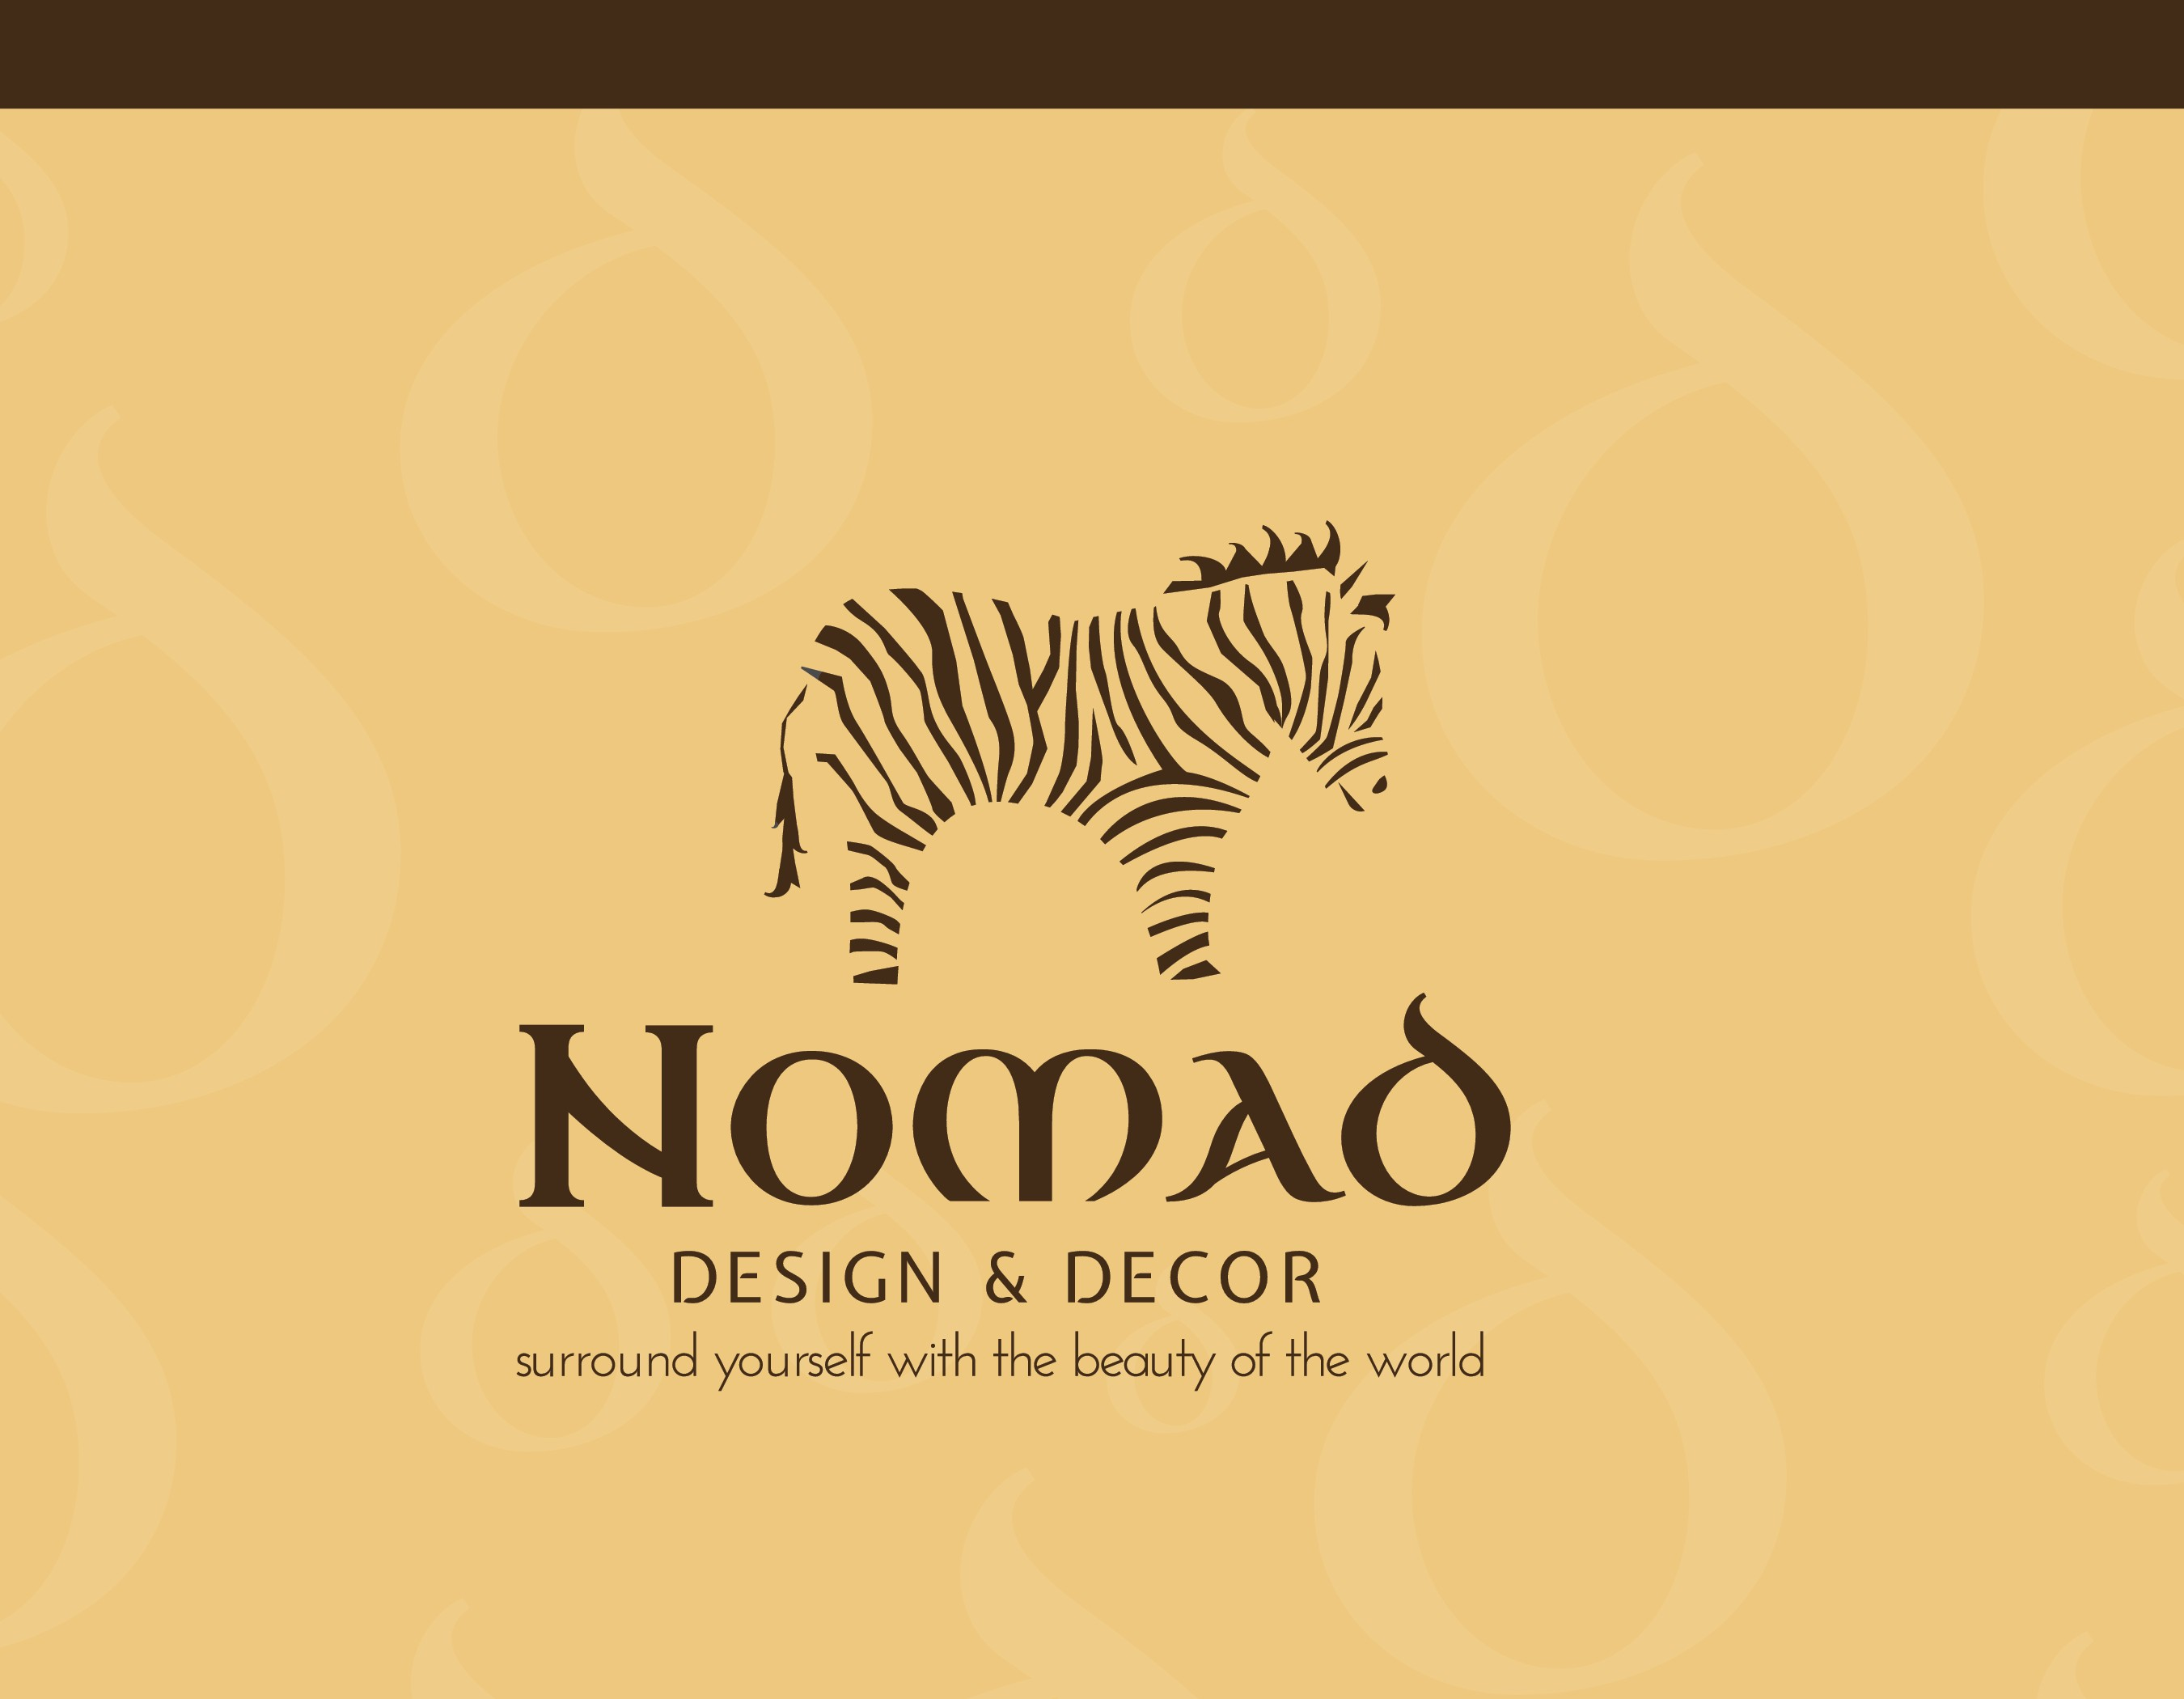 Creat a fun,colorful, contempary design for a global home decor store.